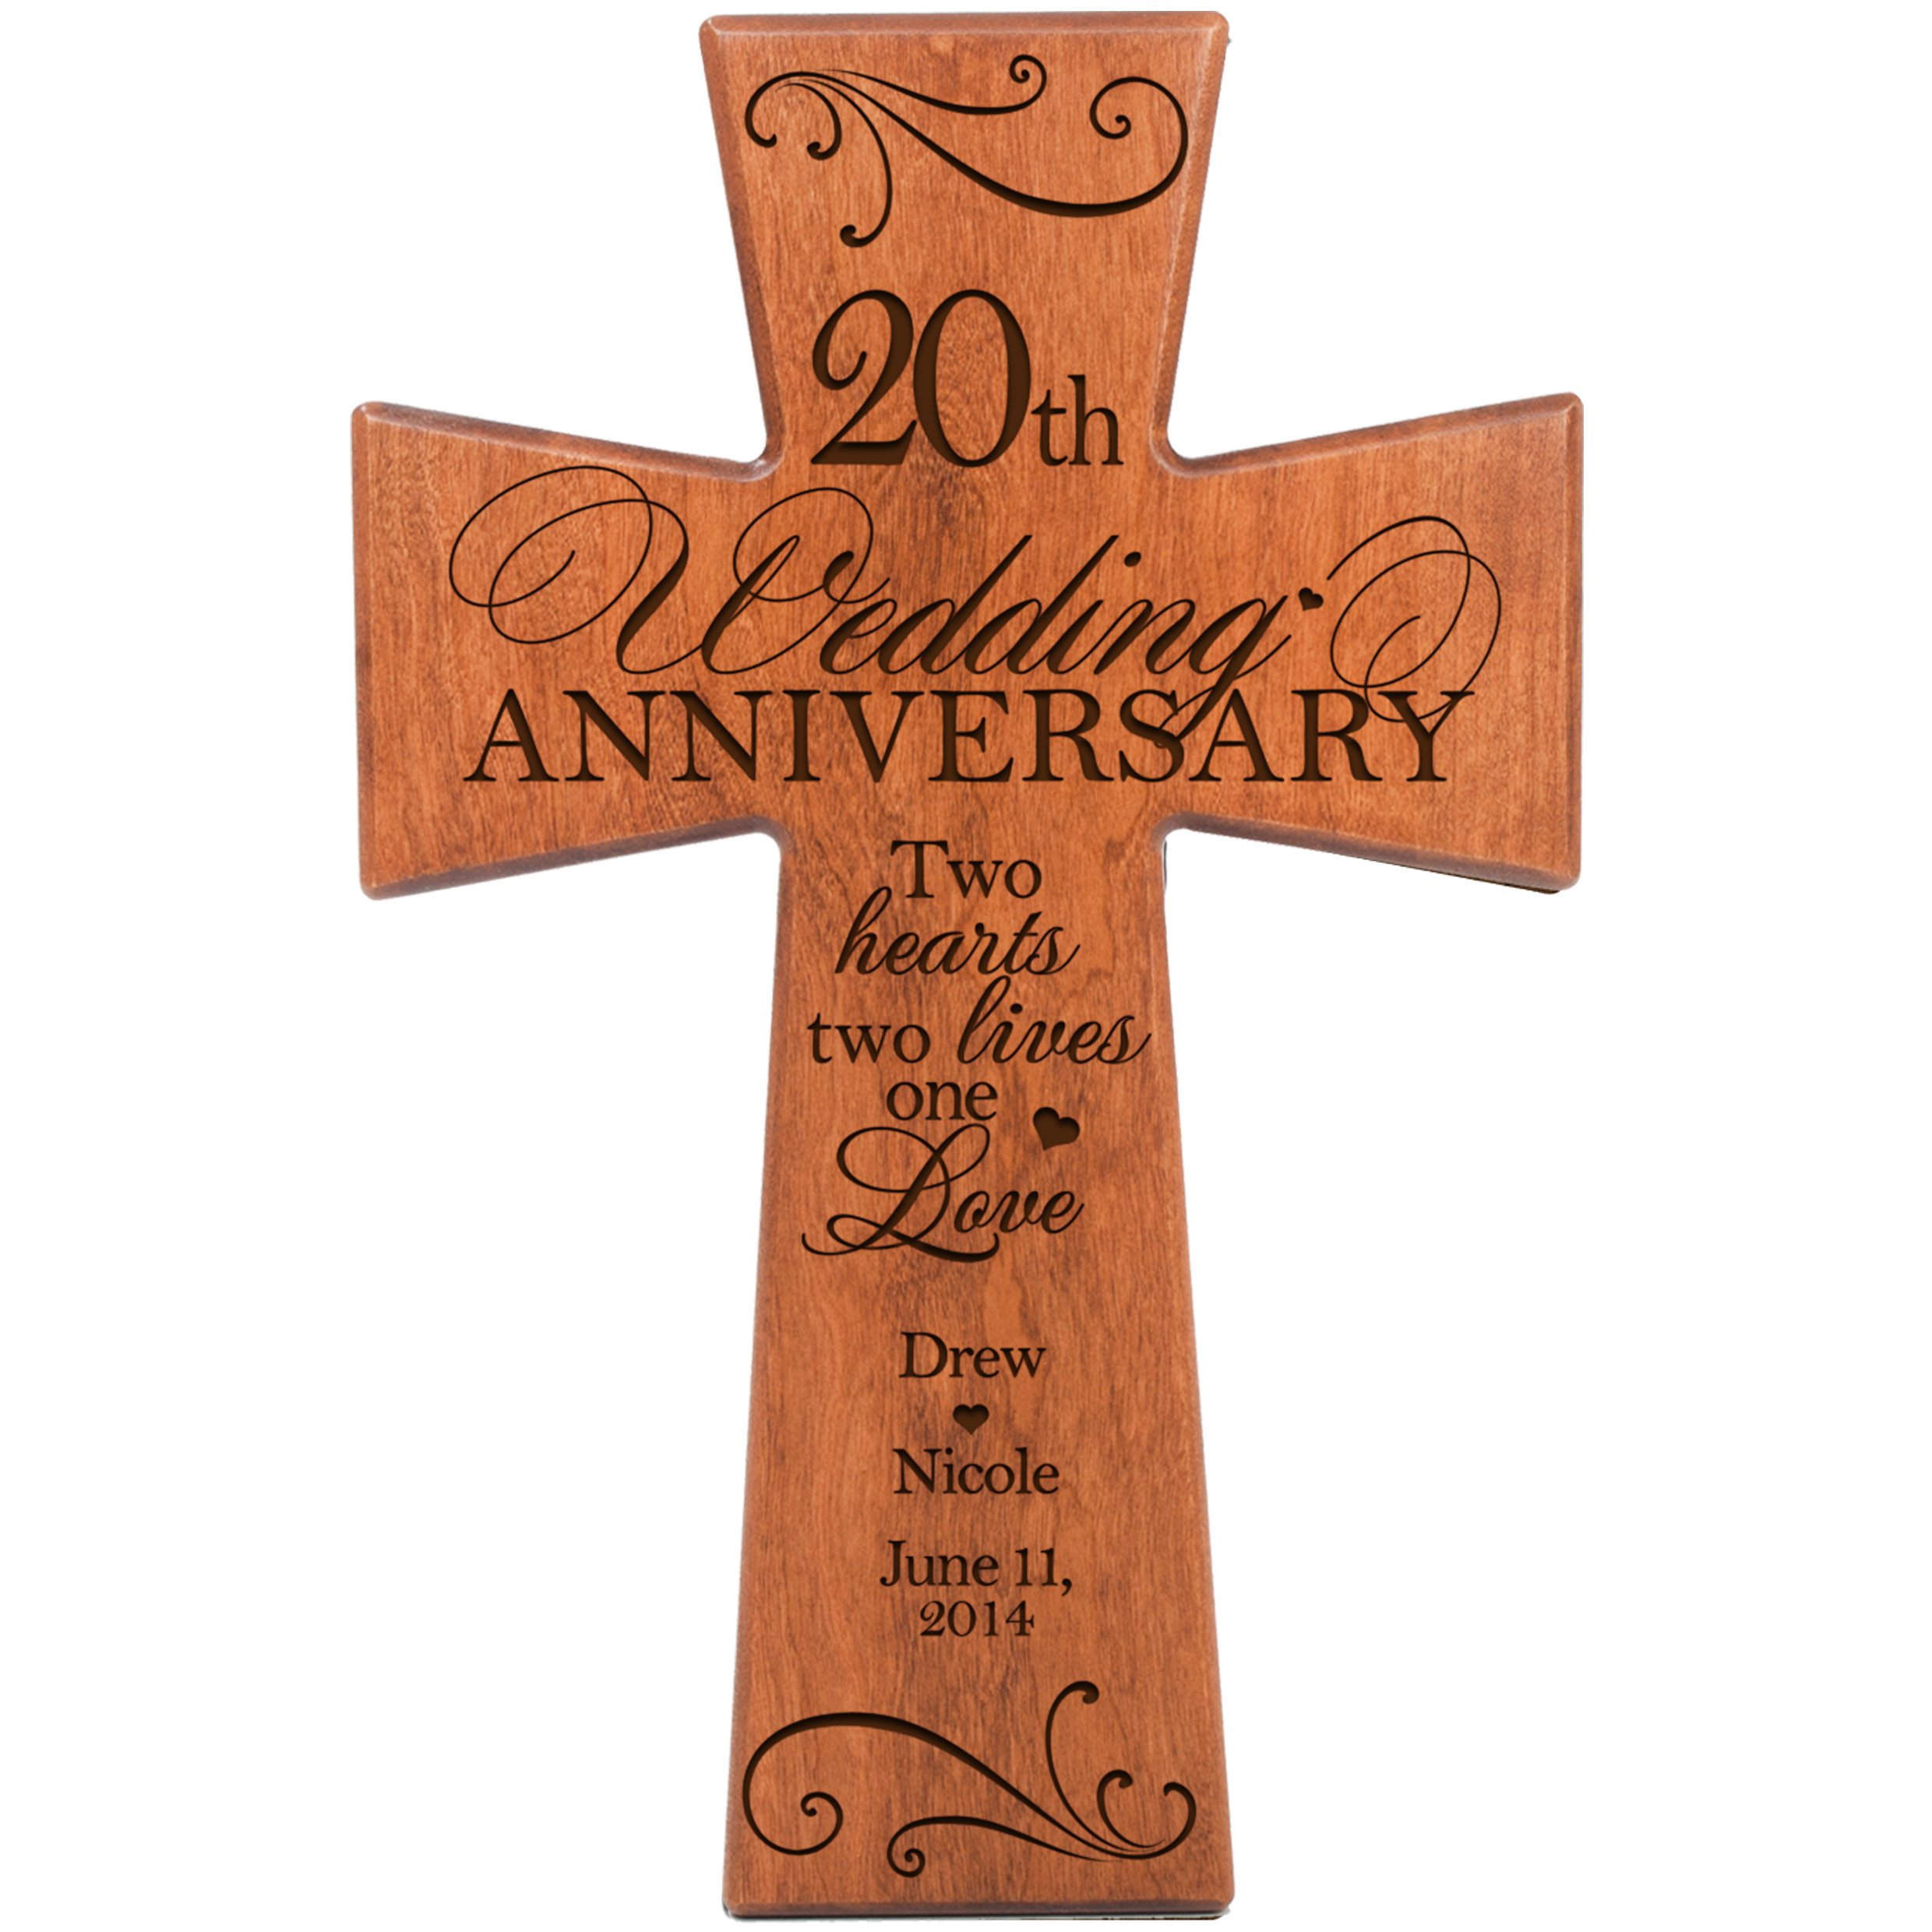 Personalized 20th Wedding Anniversary Cherry Wood Wall Cross Gift for Couple 20 Year for Her, for Him Two Hearts Two Lives One Love (7'' x 11'') by LifeSong Milestones